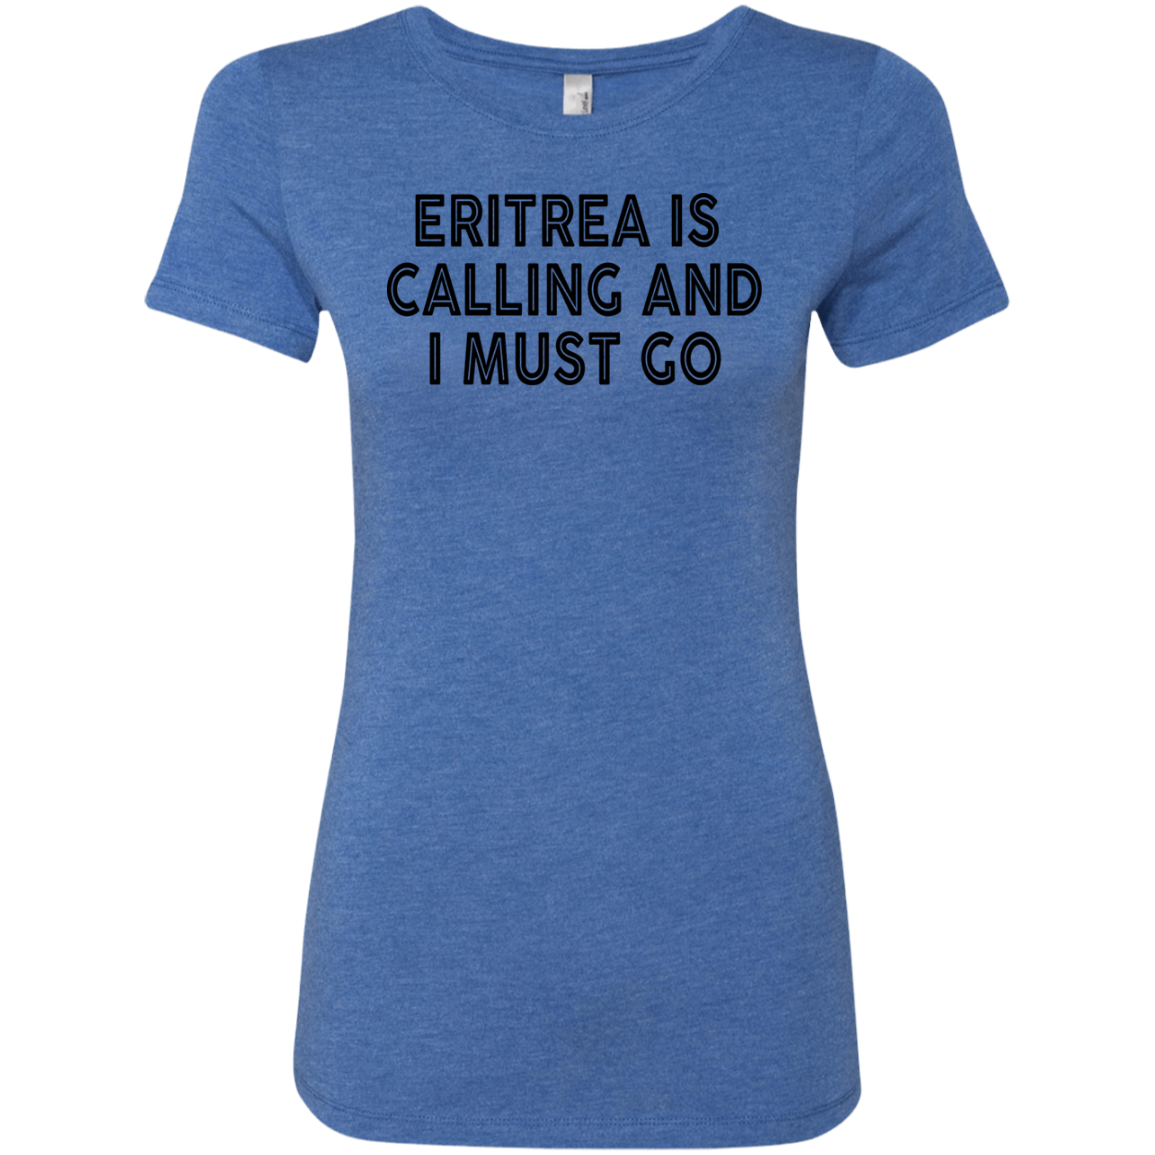 Eritrea Is Calling And I Must Go Women's Classic Tee